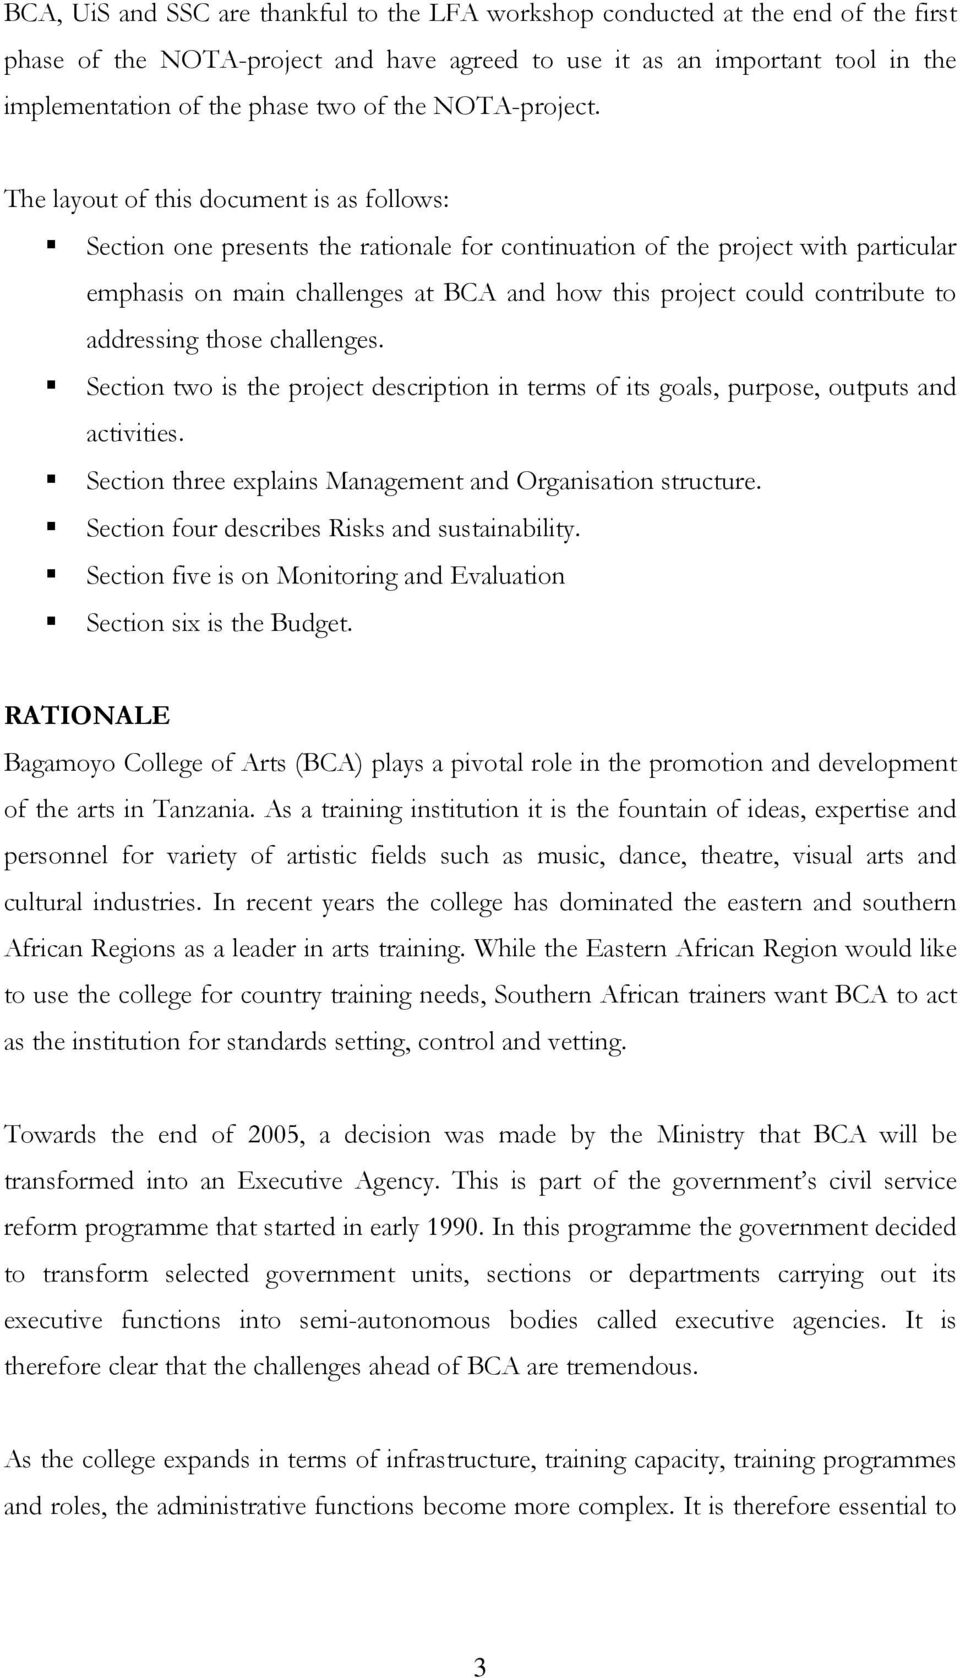 The layout of this document is as follows: Section one presents the rationale for continuation of the project with particular emphasis on main challenges at BCA and how this project could contribute